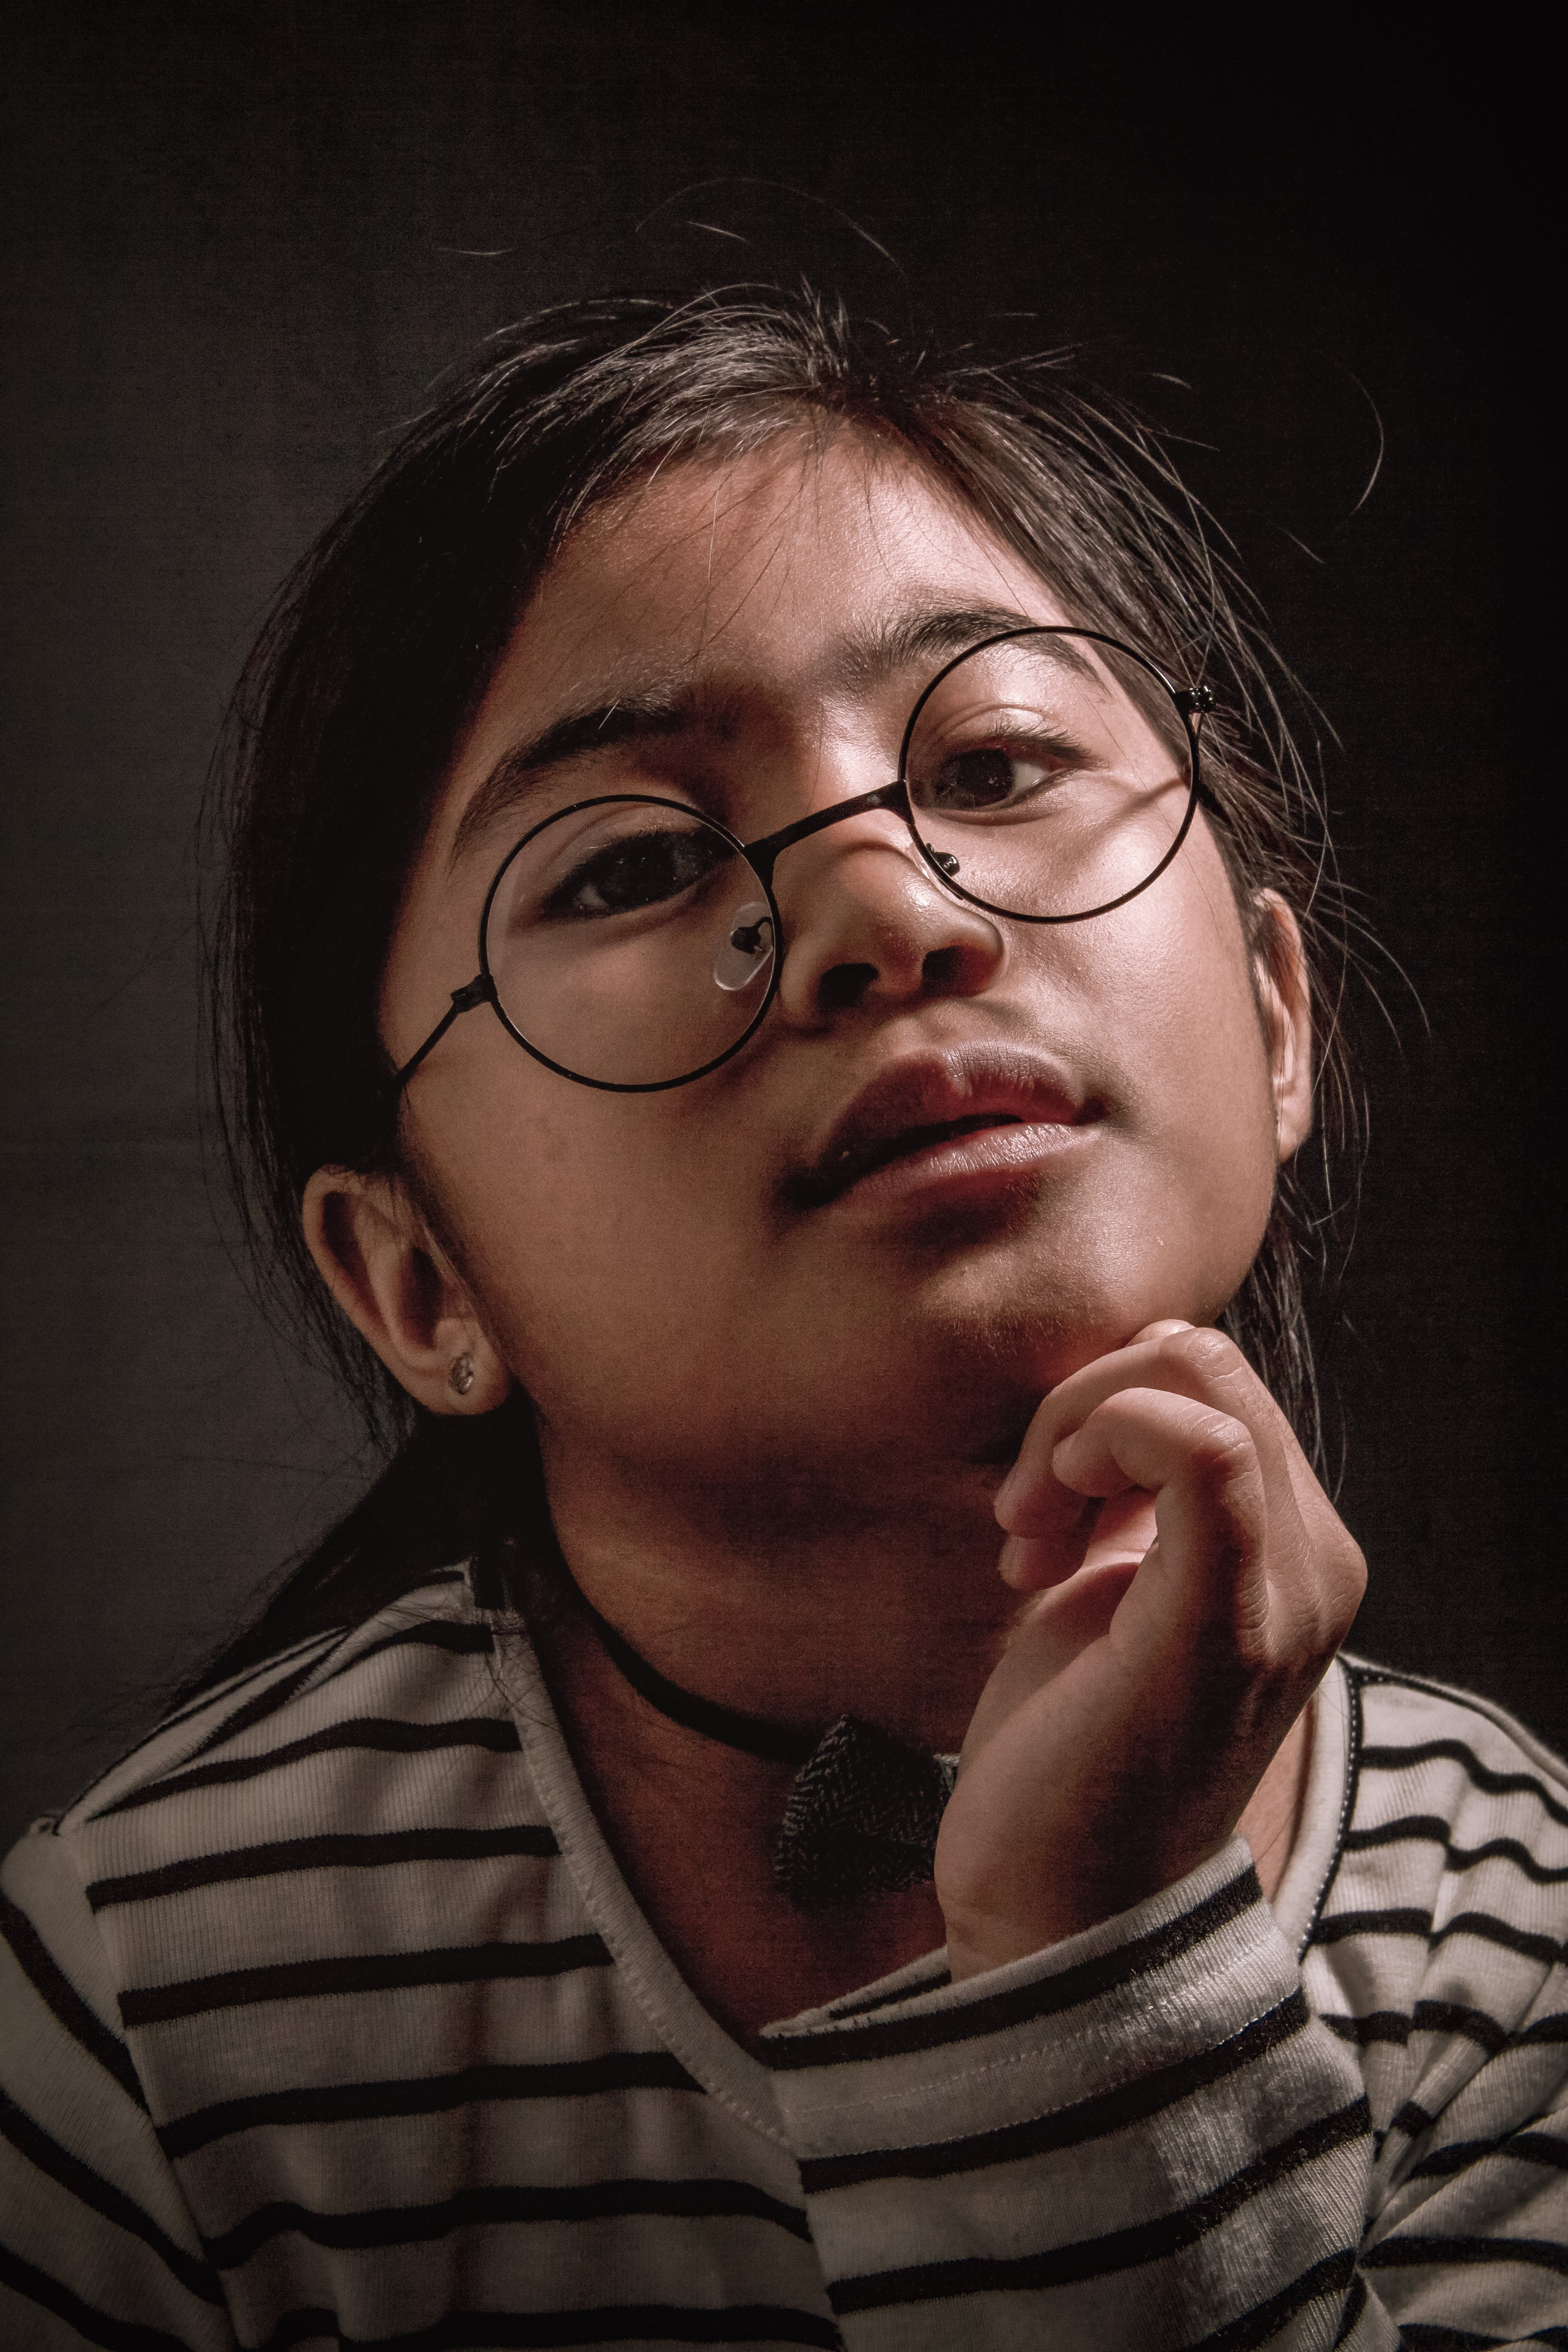 Portrait Photo of Girl in Black and White Striped Sweater With Black Framed Eyeglasses